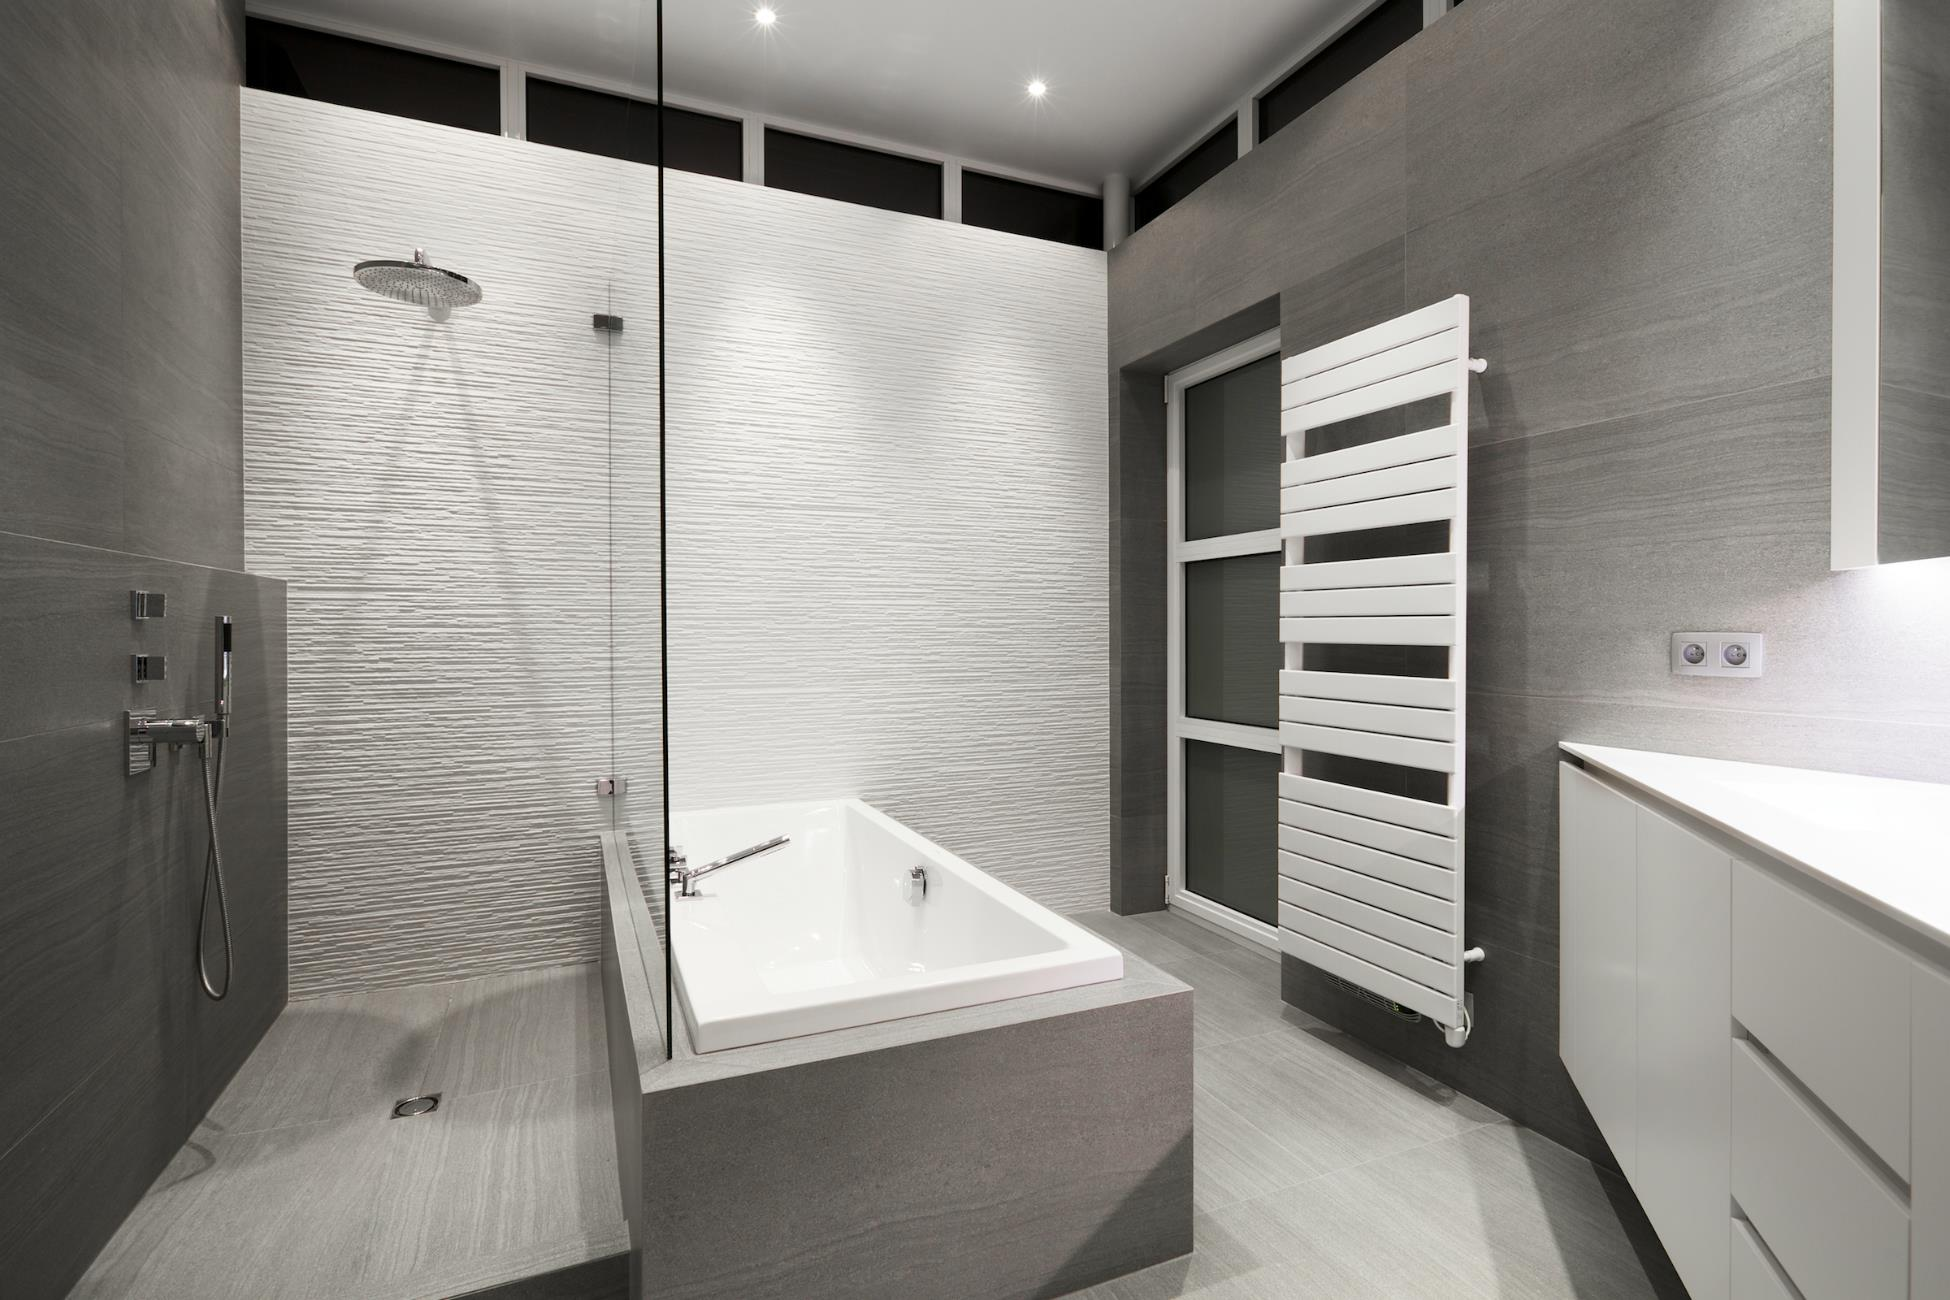 salle de bain haut de gamme avec douche italienne r alisations. Black Bedroom Furniture Sets. Home Design Ideas